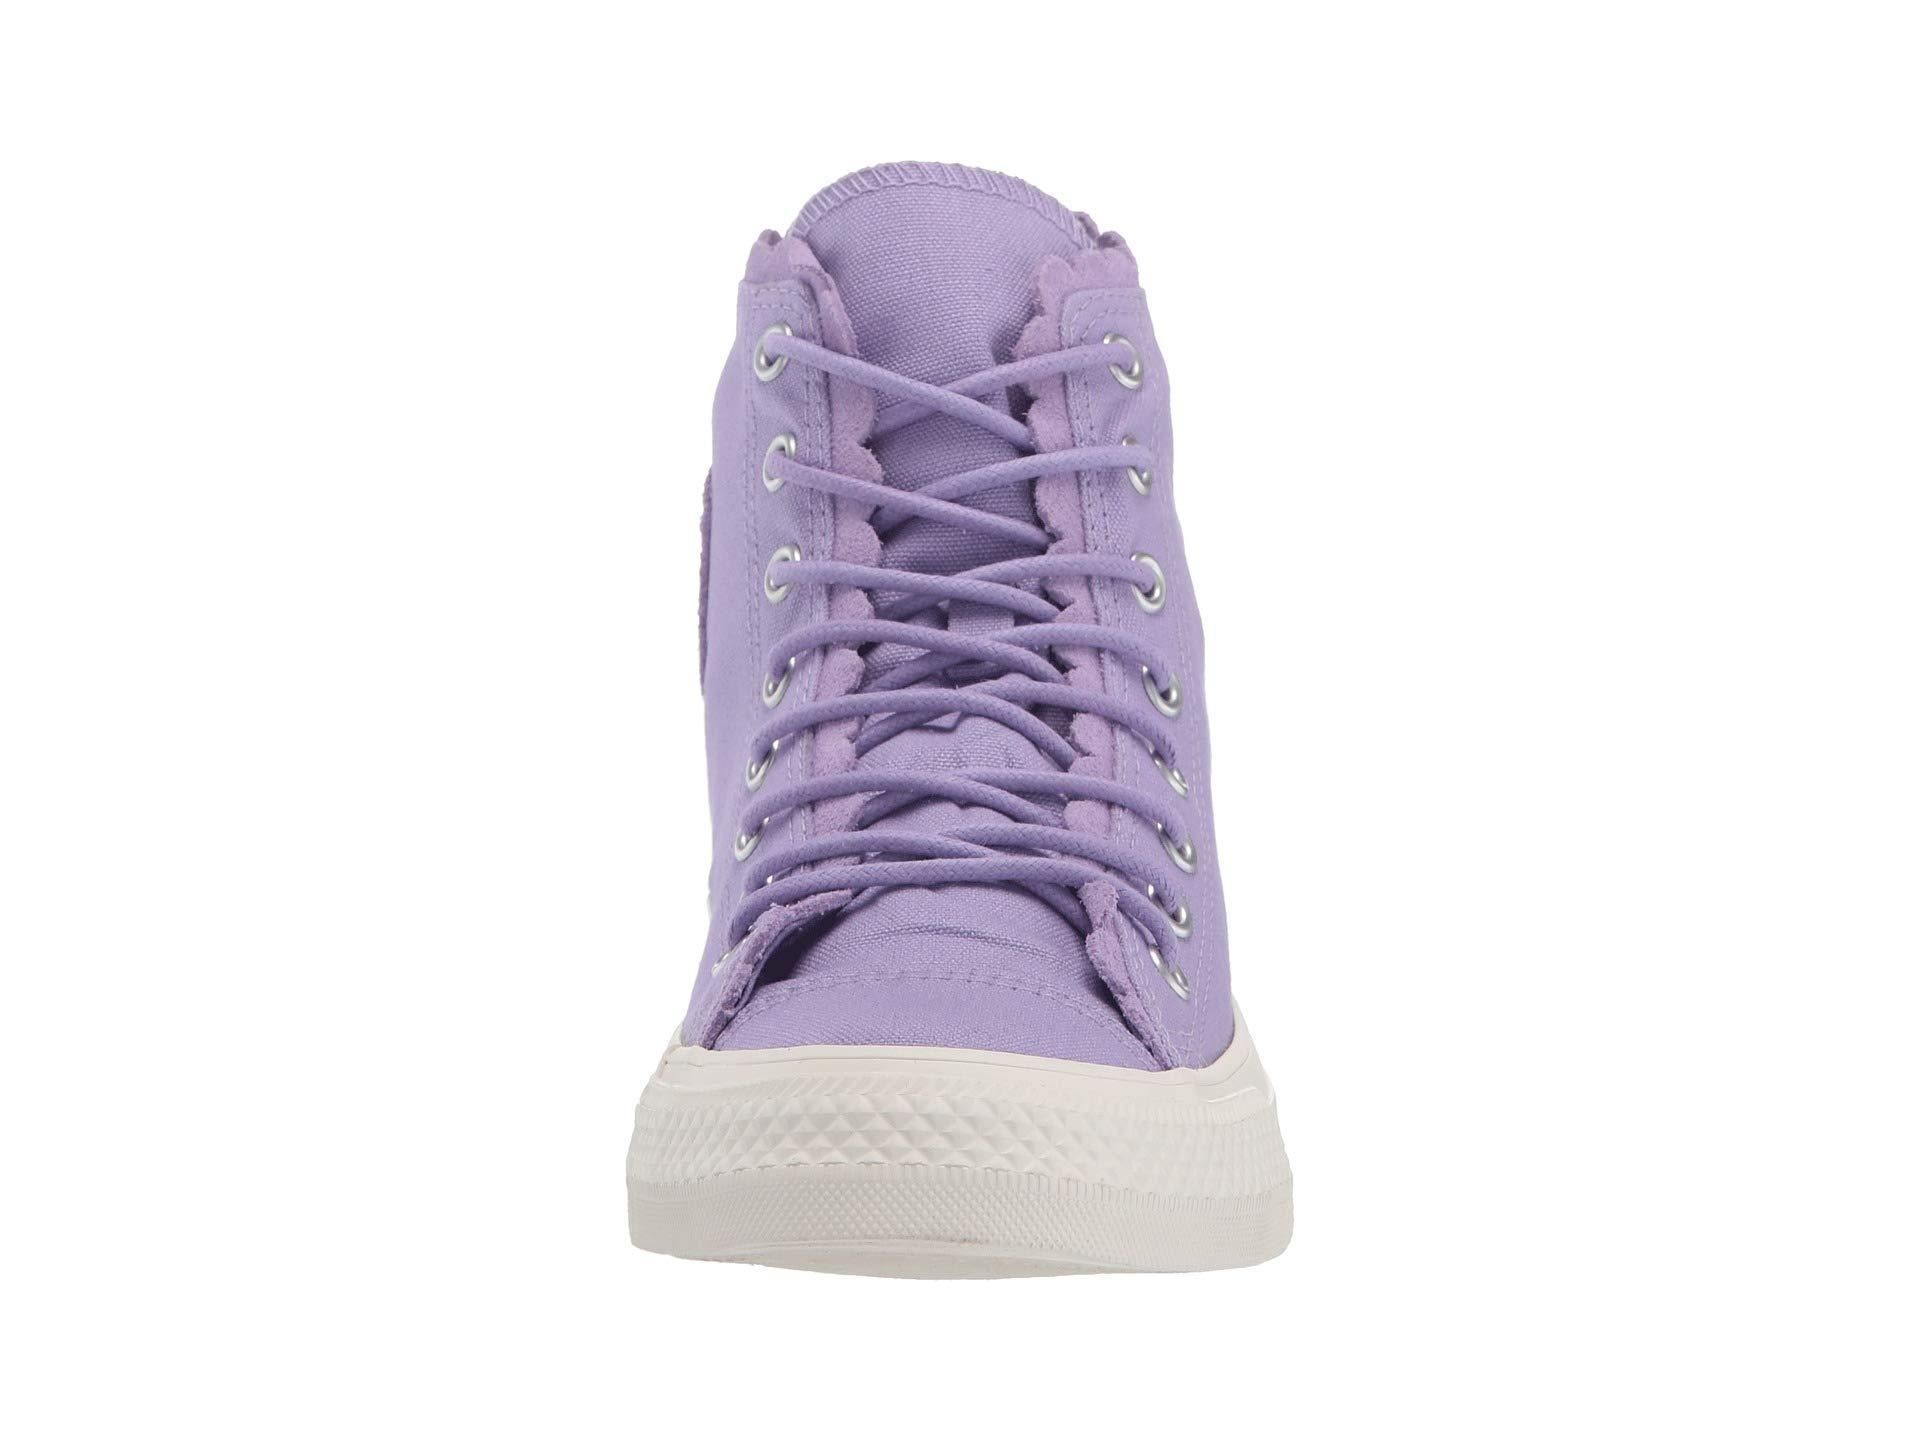 82d7a6ce1cfb56 Converse - Purple Chuck Taylor All Star Frilly Thrills Canvas - Hi (washed  Lilac . View fullscreen